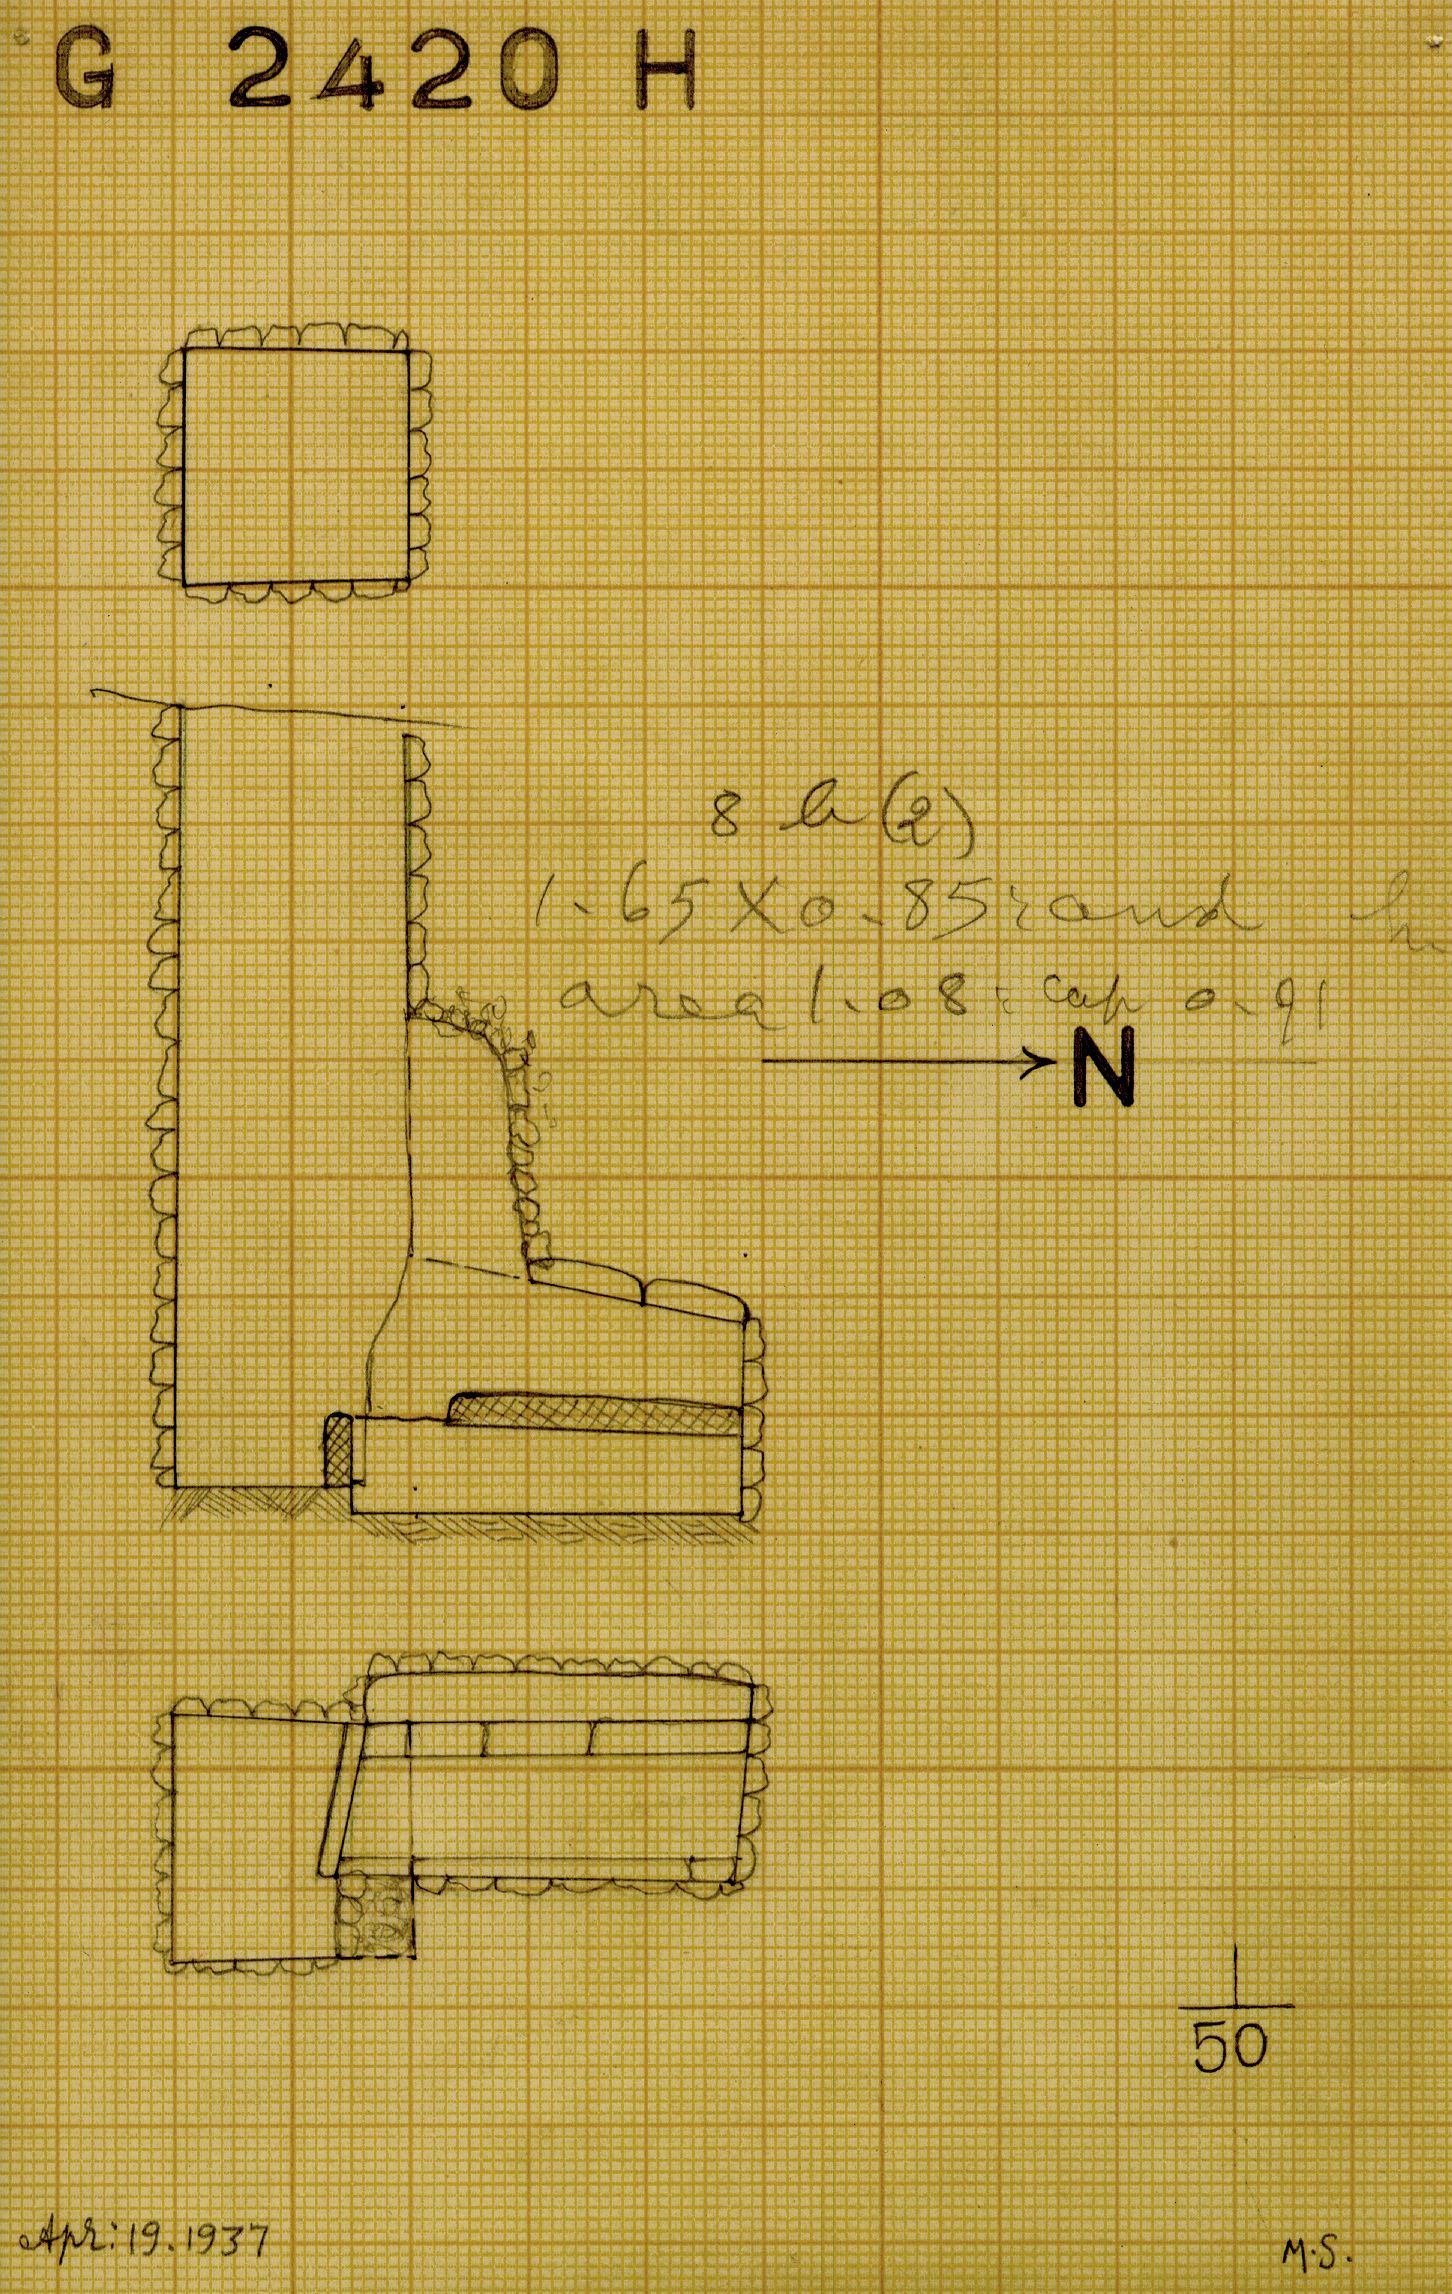 Maps and plans: G 2420, Shaft H